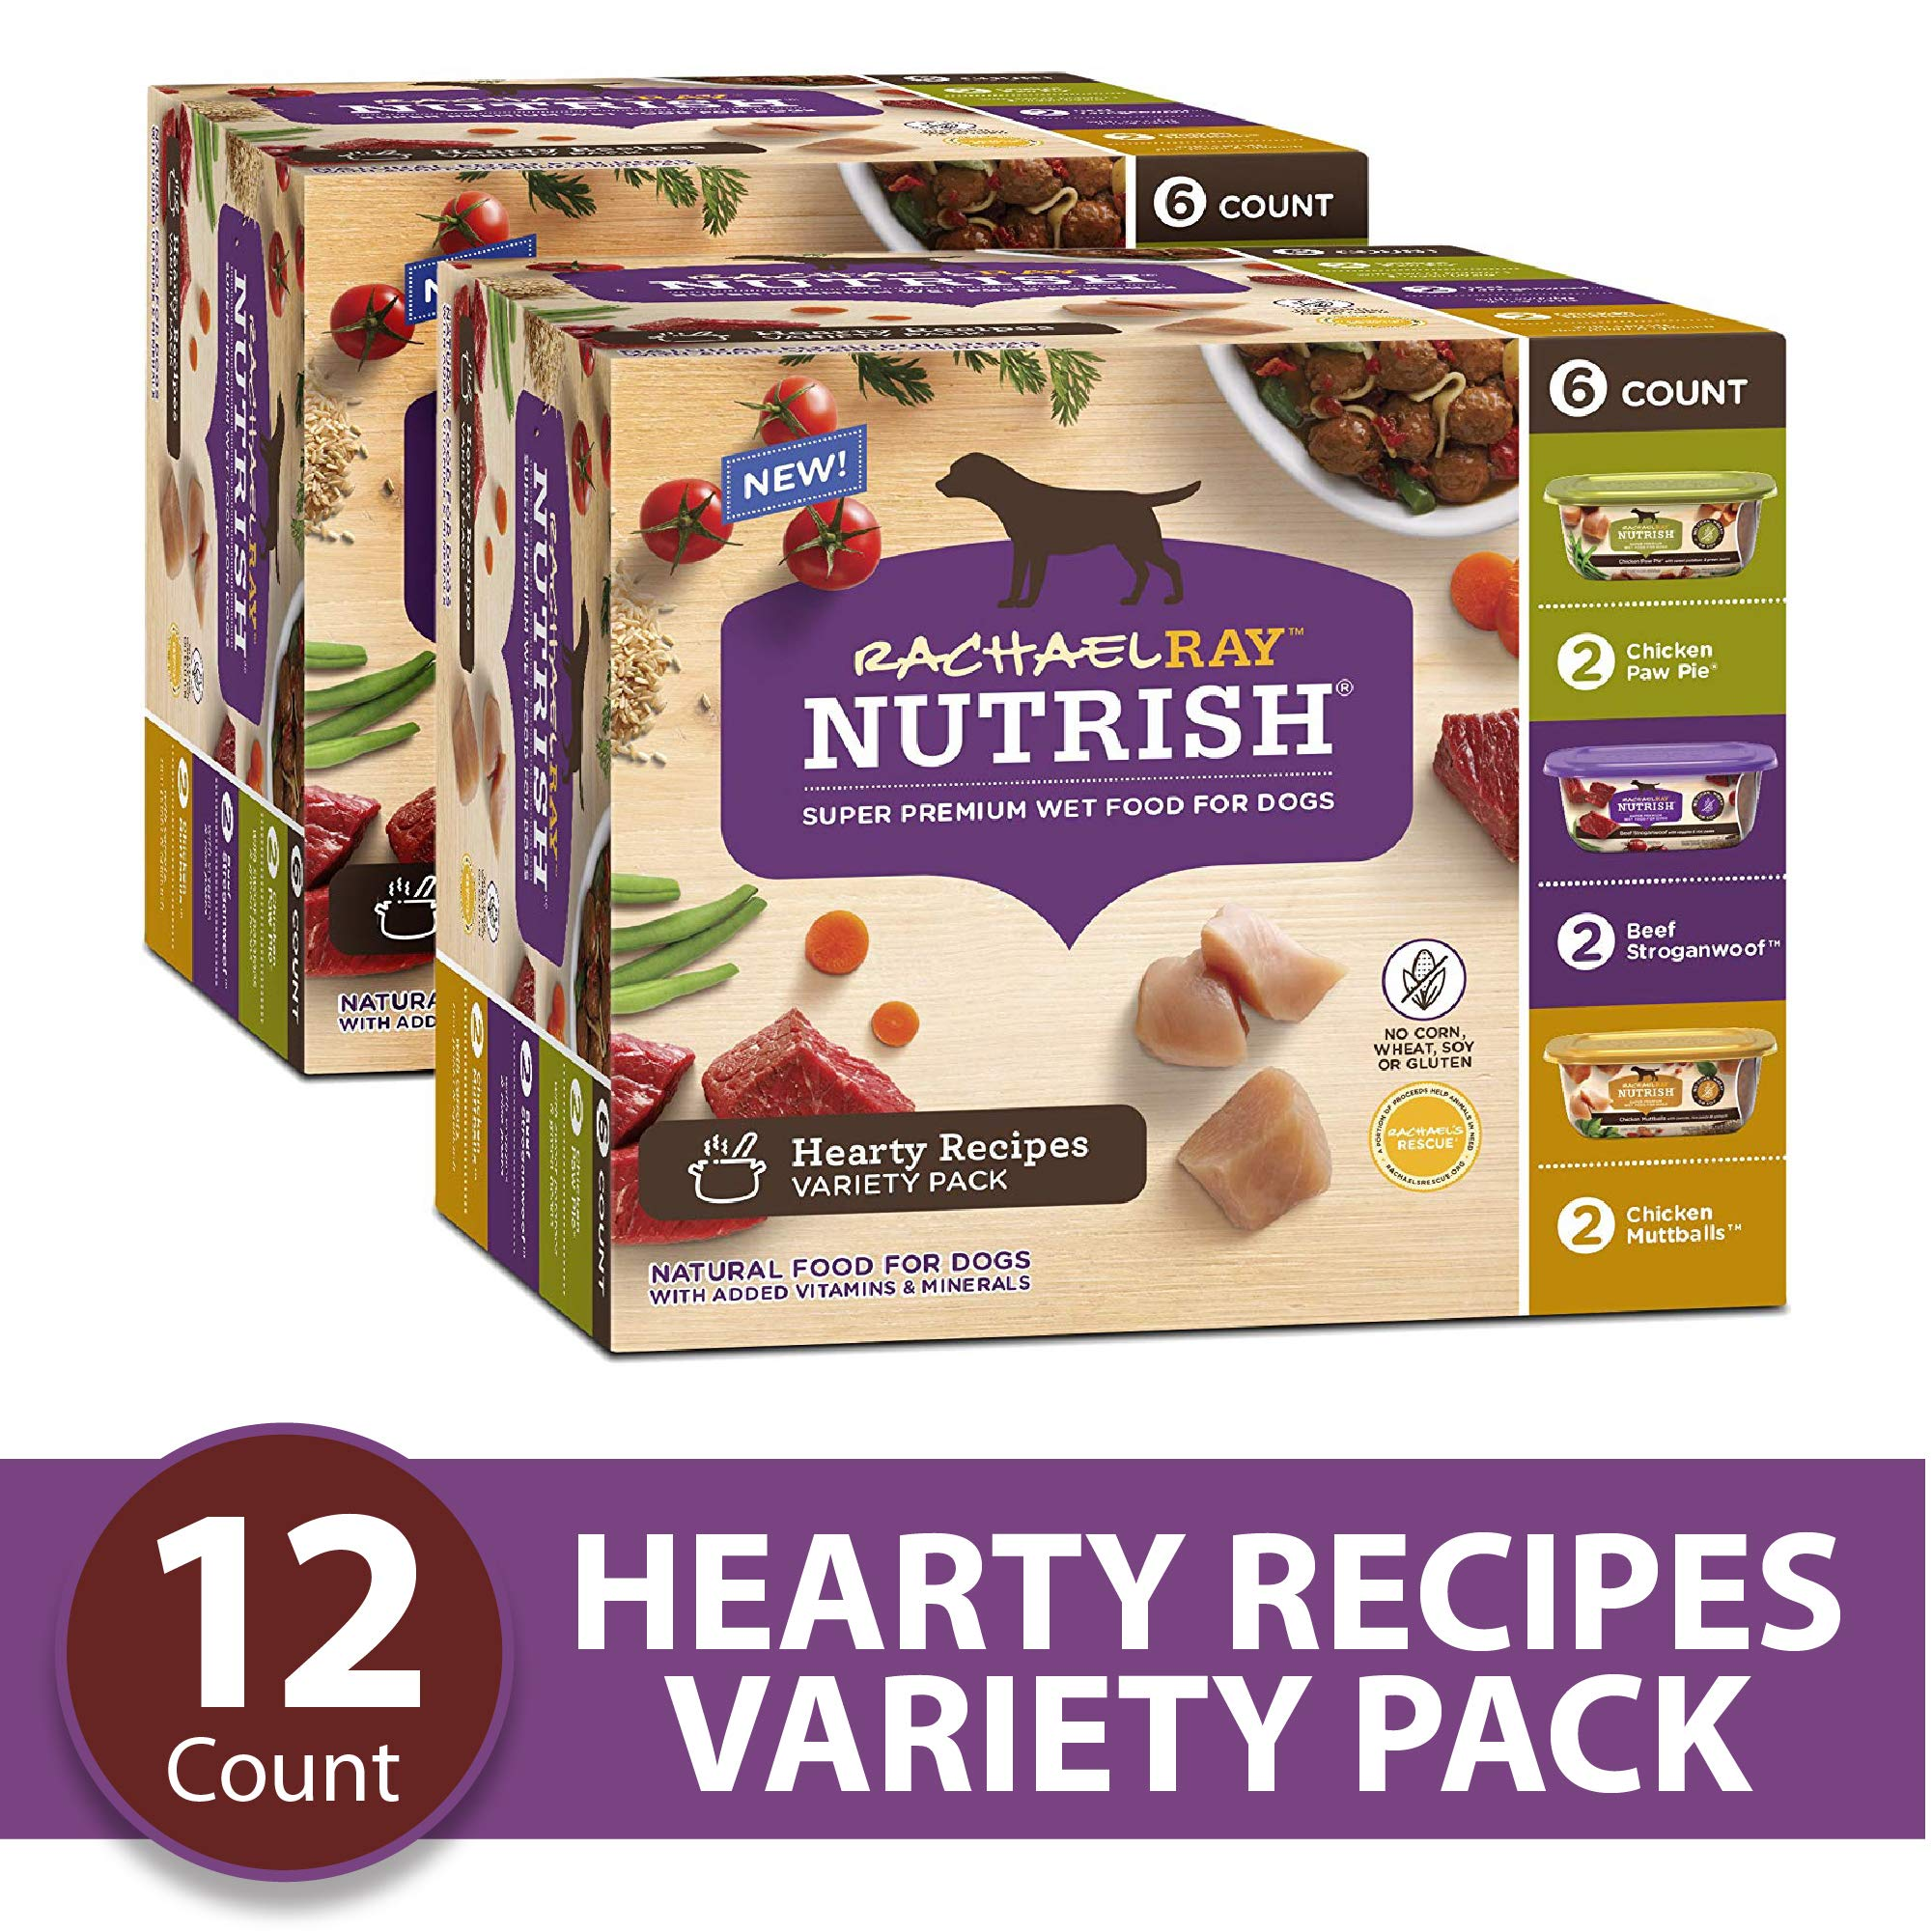 Rachael Ray Nutrish Natural Premium Wet Dog Food, Hearty Recipes Variety Pack, 8 Oz. Tub (Pack Of 12) by Rachael Ray Nutrish